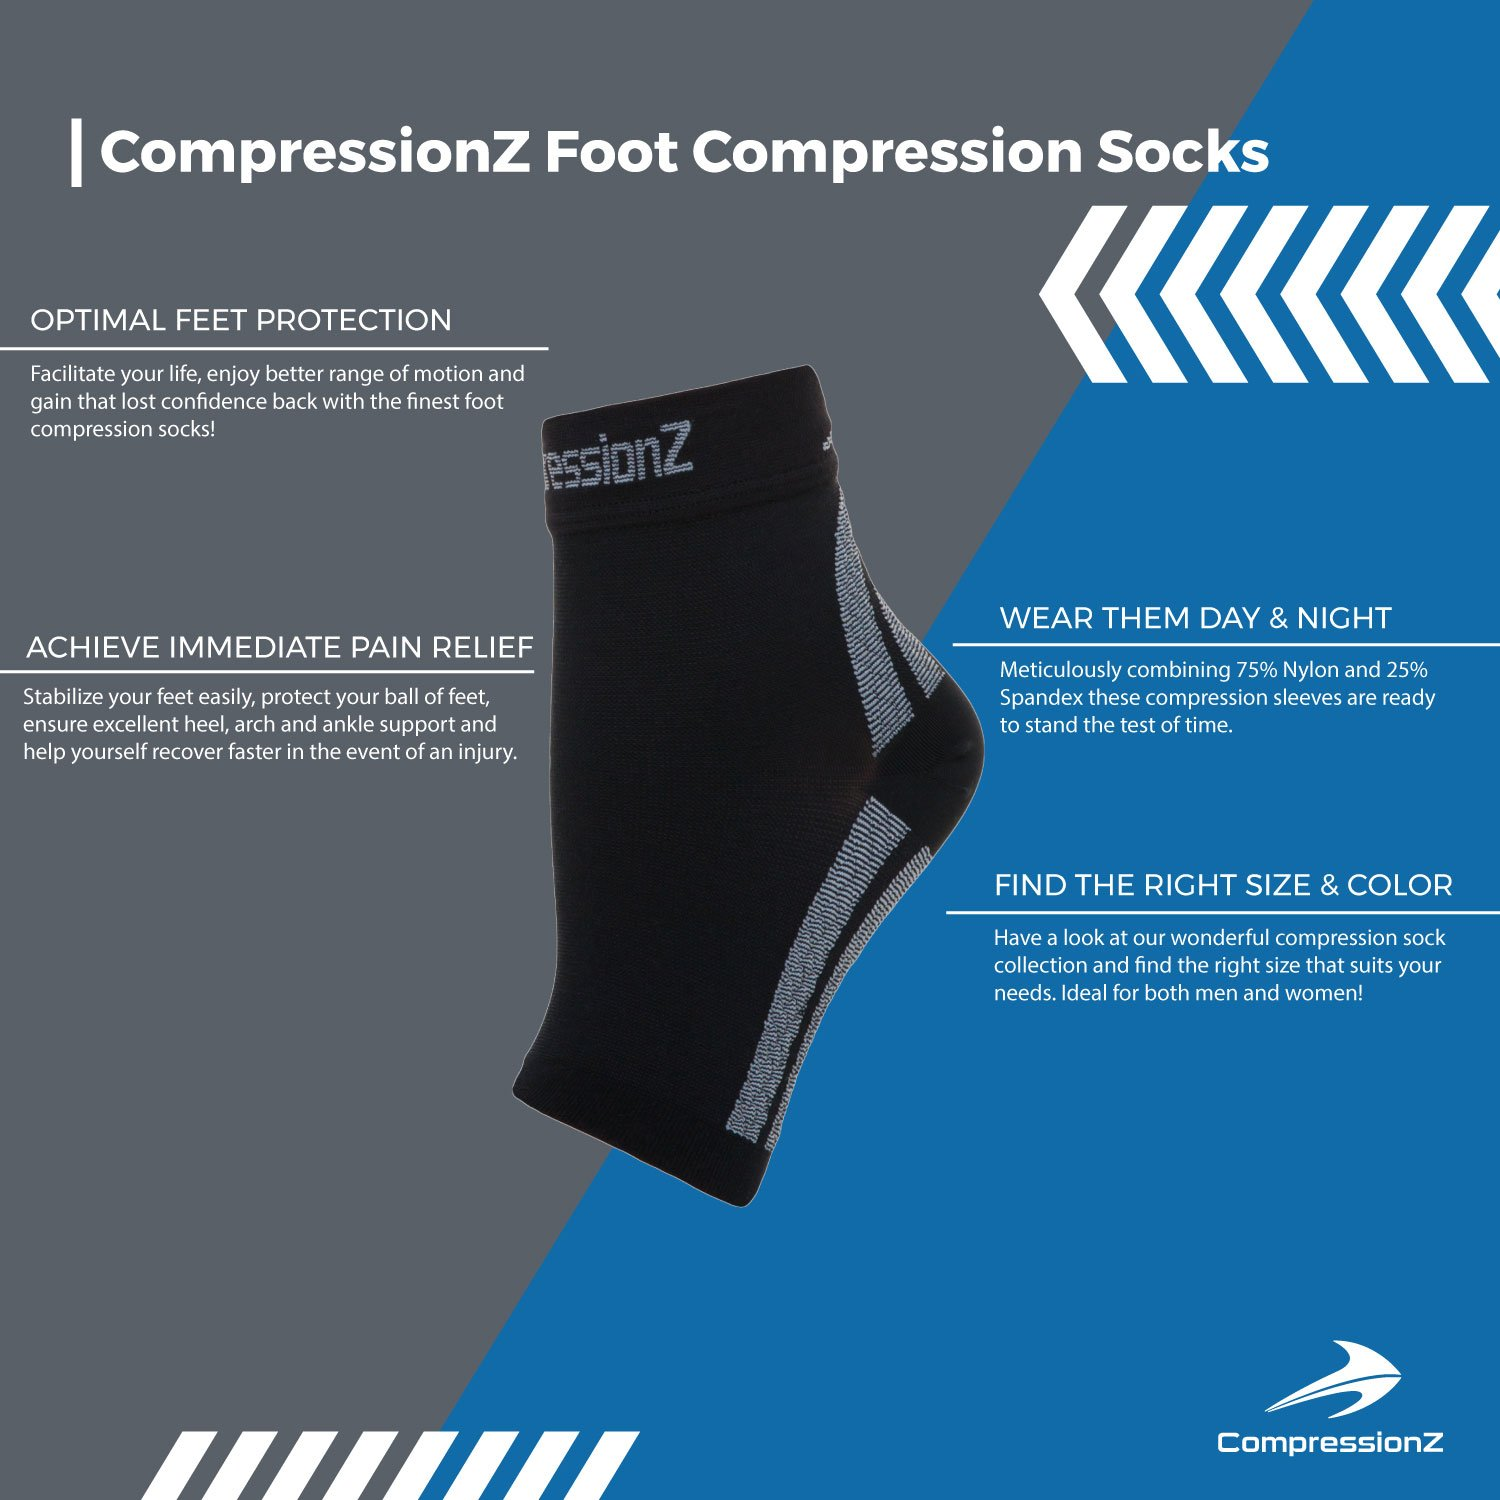 6a61827c2 Amazon.com  CompressionZ Plantar Fasciitis Socks - Compression Foot Sleeves  - Ankle Brace w Arch Support - Pain Relief for Heel Spurs